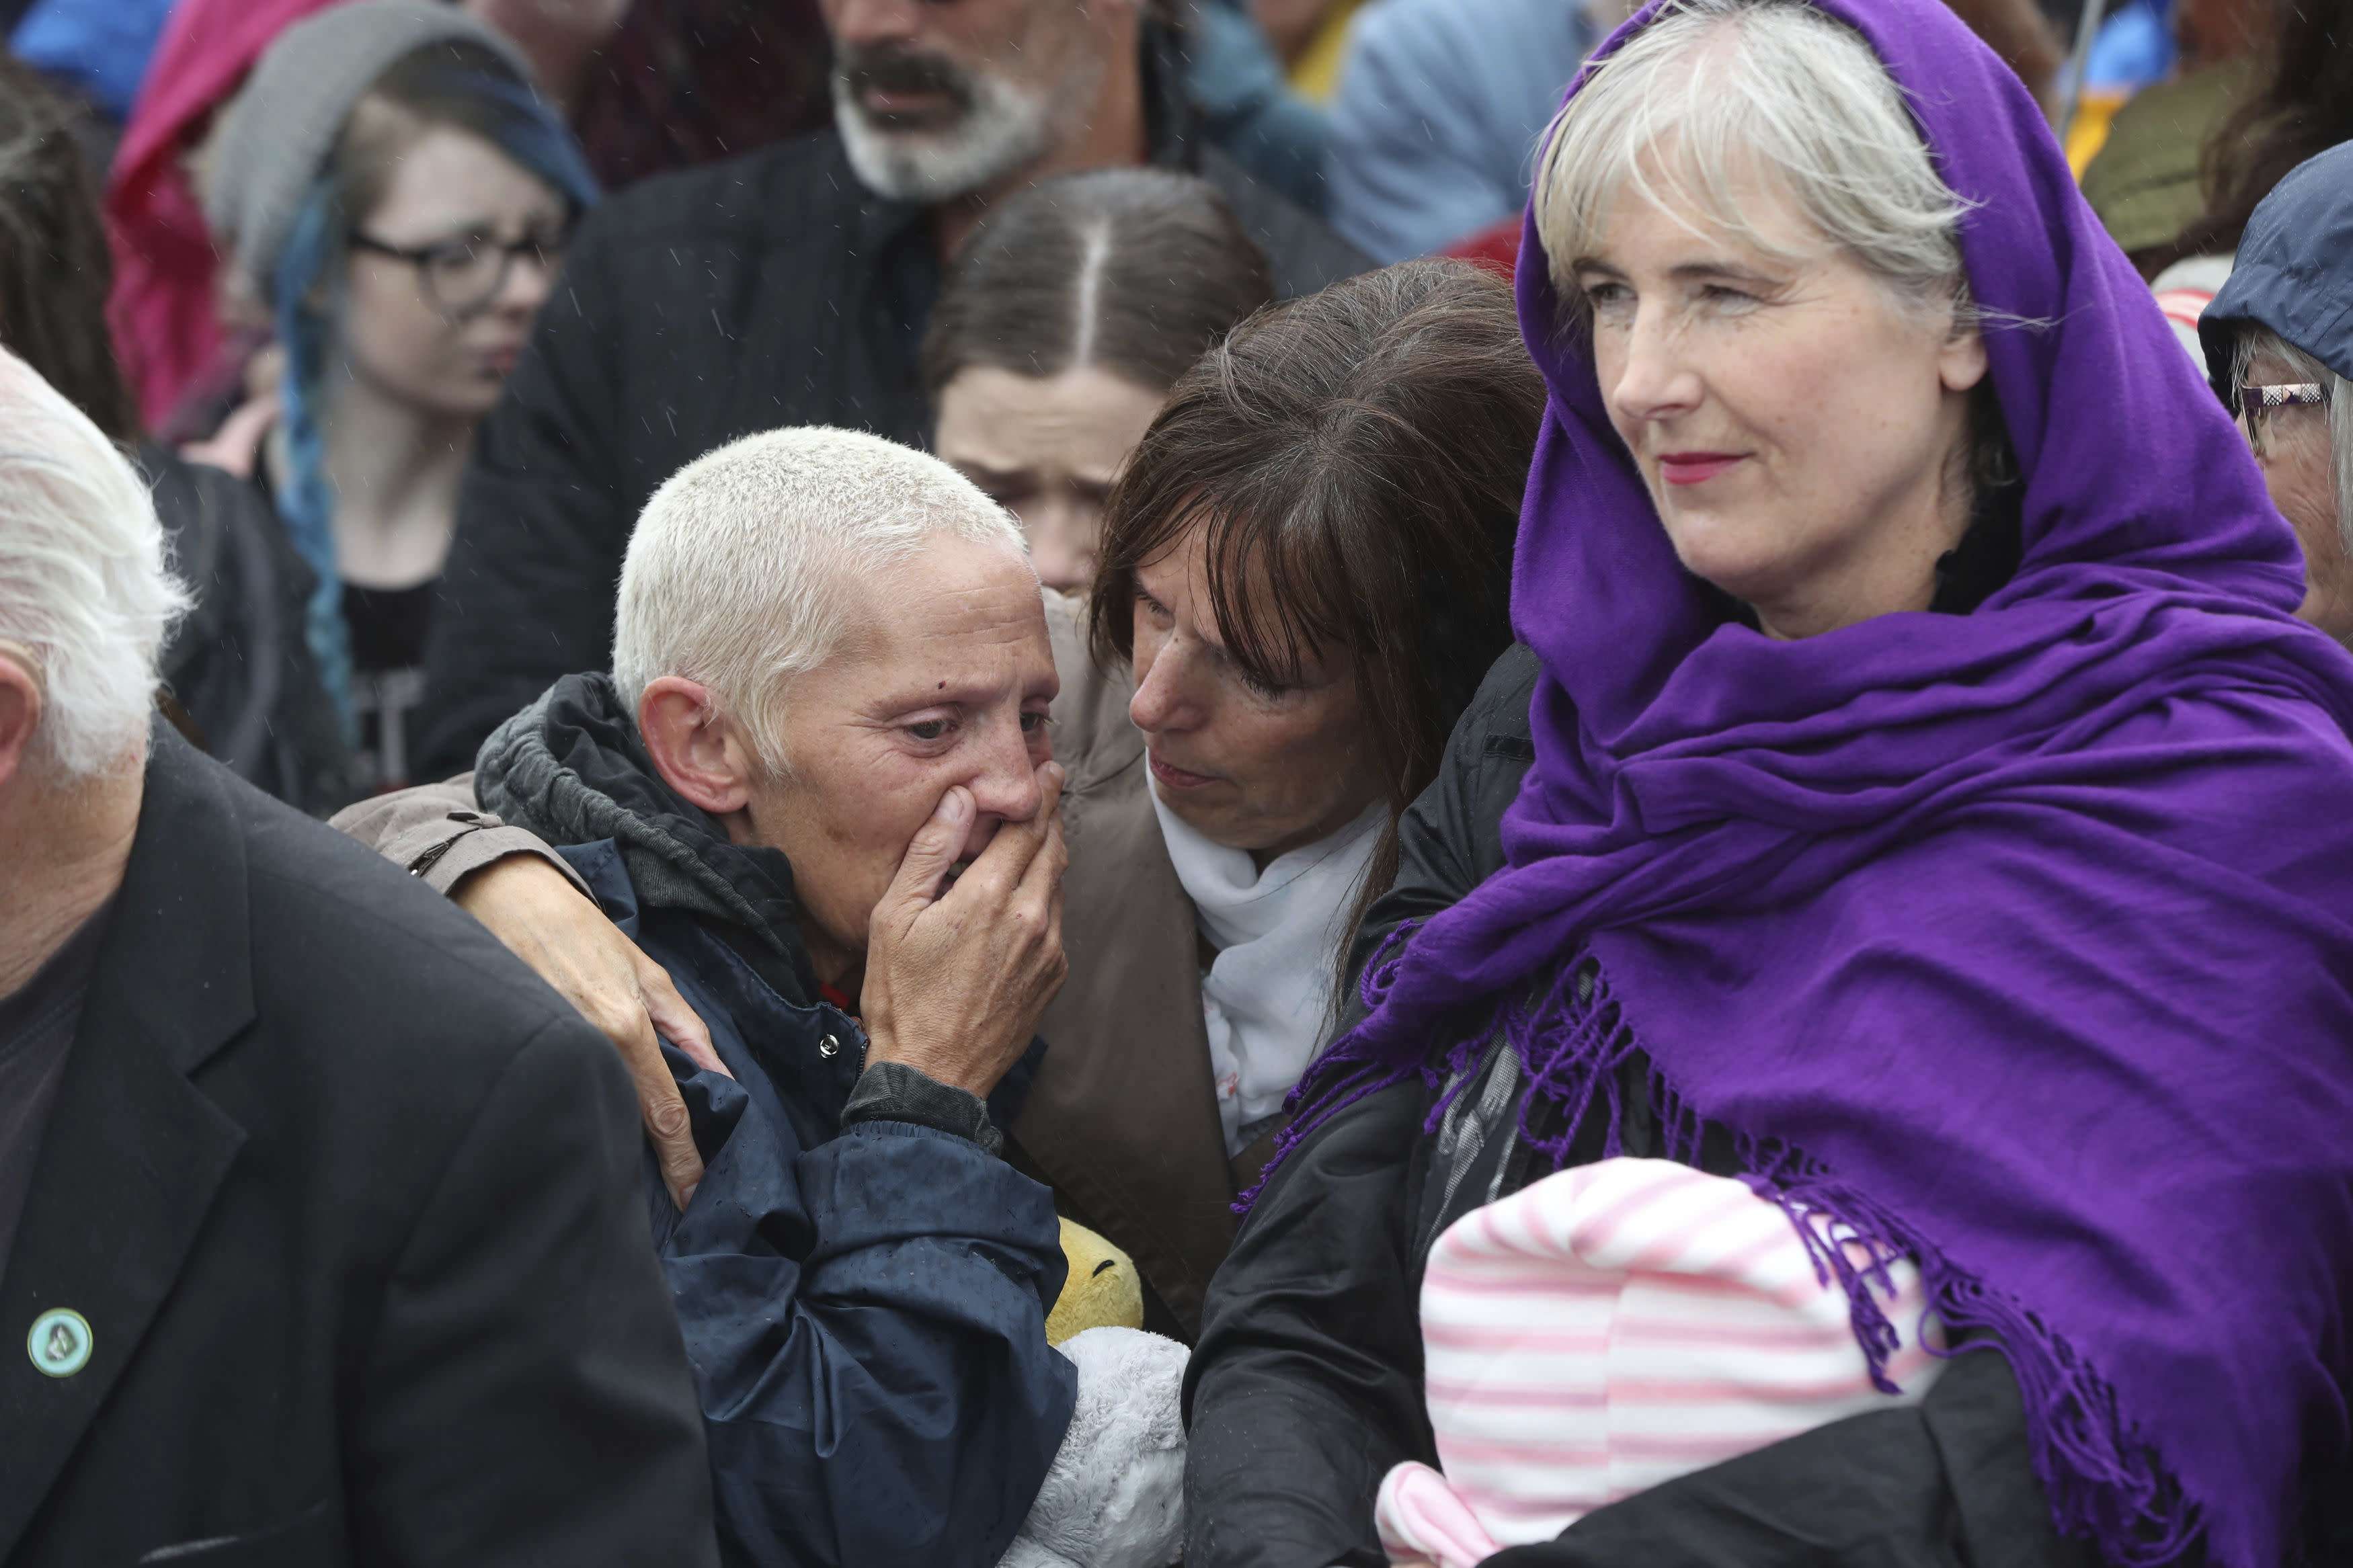 People gather to protest at the site of the former Tuam home for unmarried mothers in County Galway, during the visit to Ireland by Pope Francis, Sunday, Aug. 26, 2018. Survivors of one of Ireland's wretched mother and baby homes were to hold their own demonstration Sunday. The location is Tuam, site of a mass grave of hundreds of babies who died at a church-run home. (Niall Carson/PA via AP)